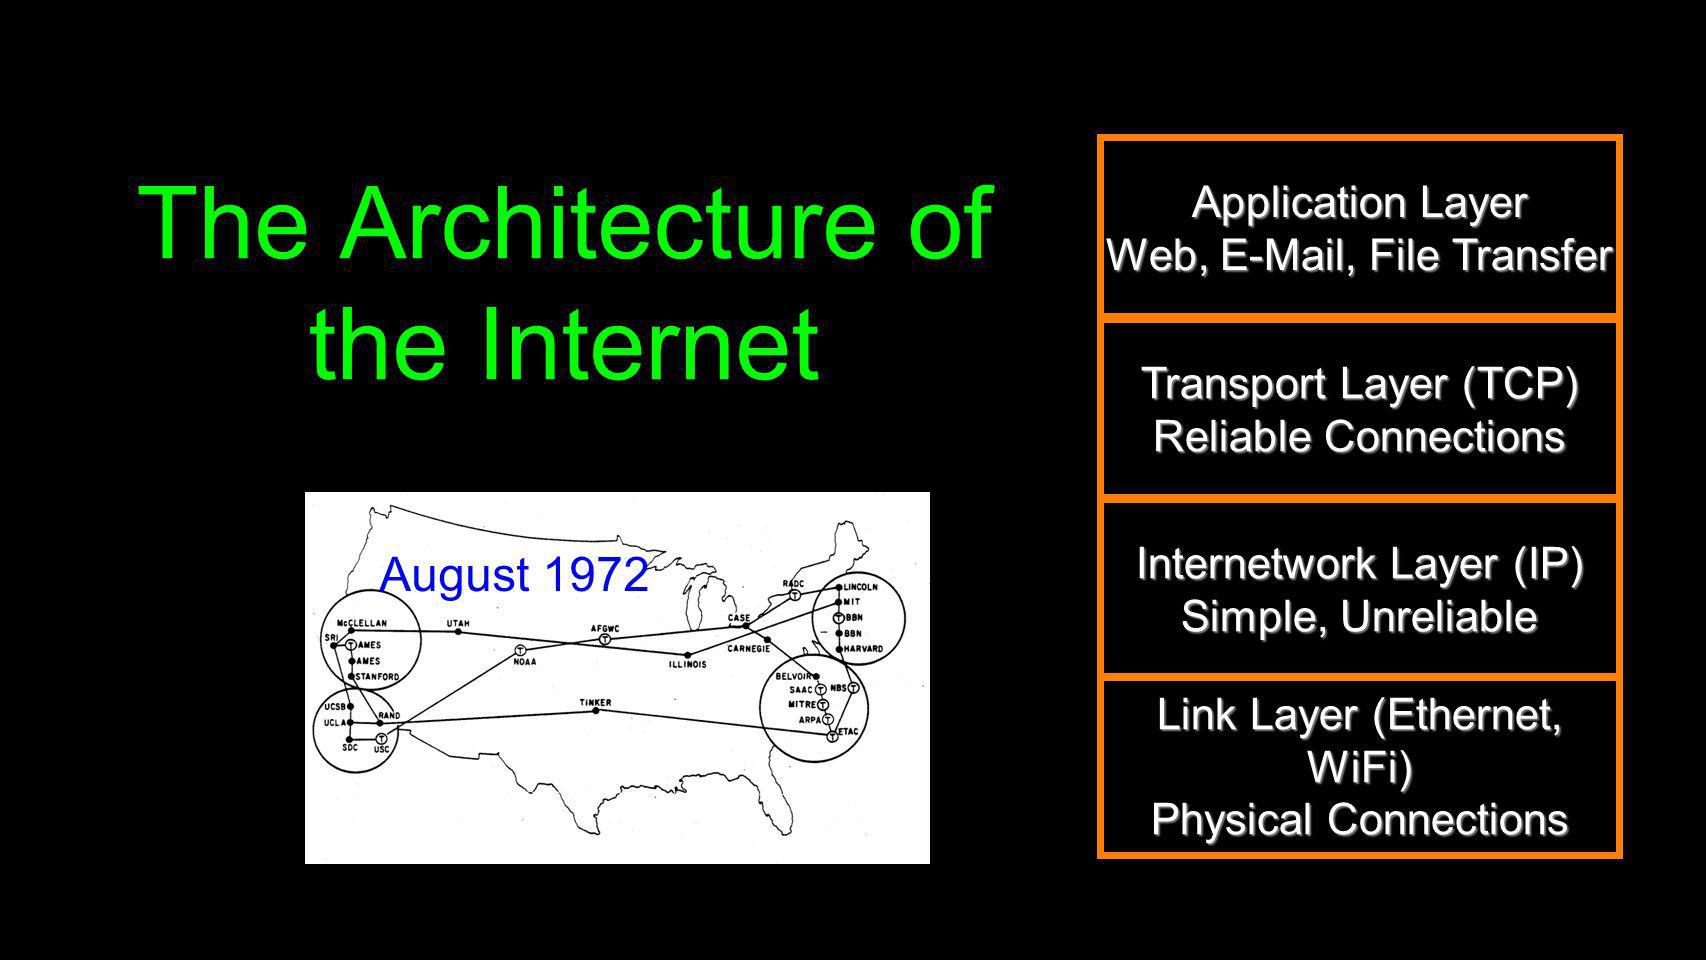 The Architecture of the Internet Application Layer Web, E-Mail, File Transfer Transport Layer (TCP) Reliable Connections Internetwork Layer (IP) Simpl